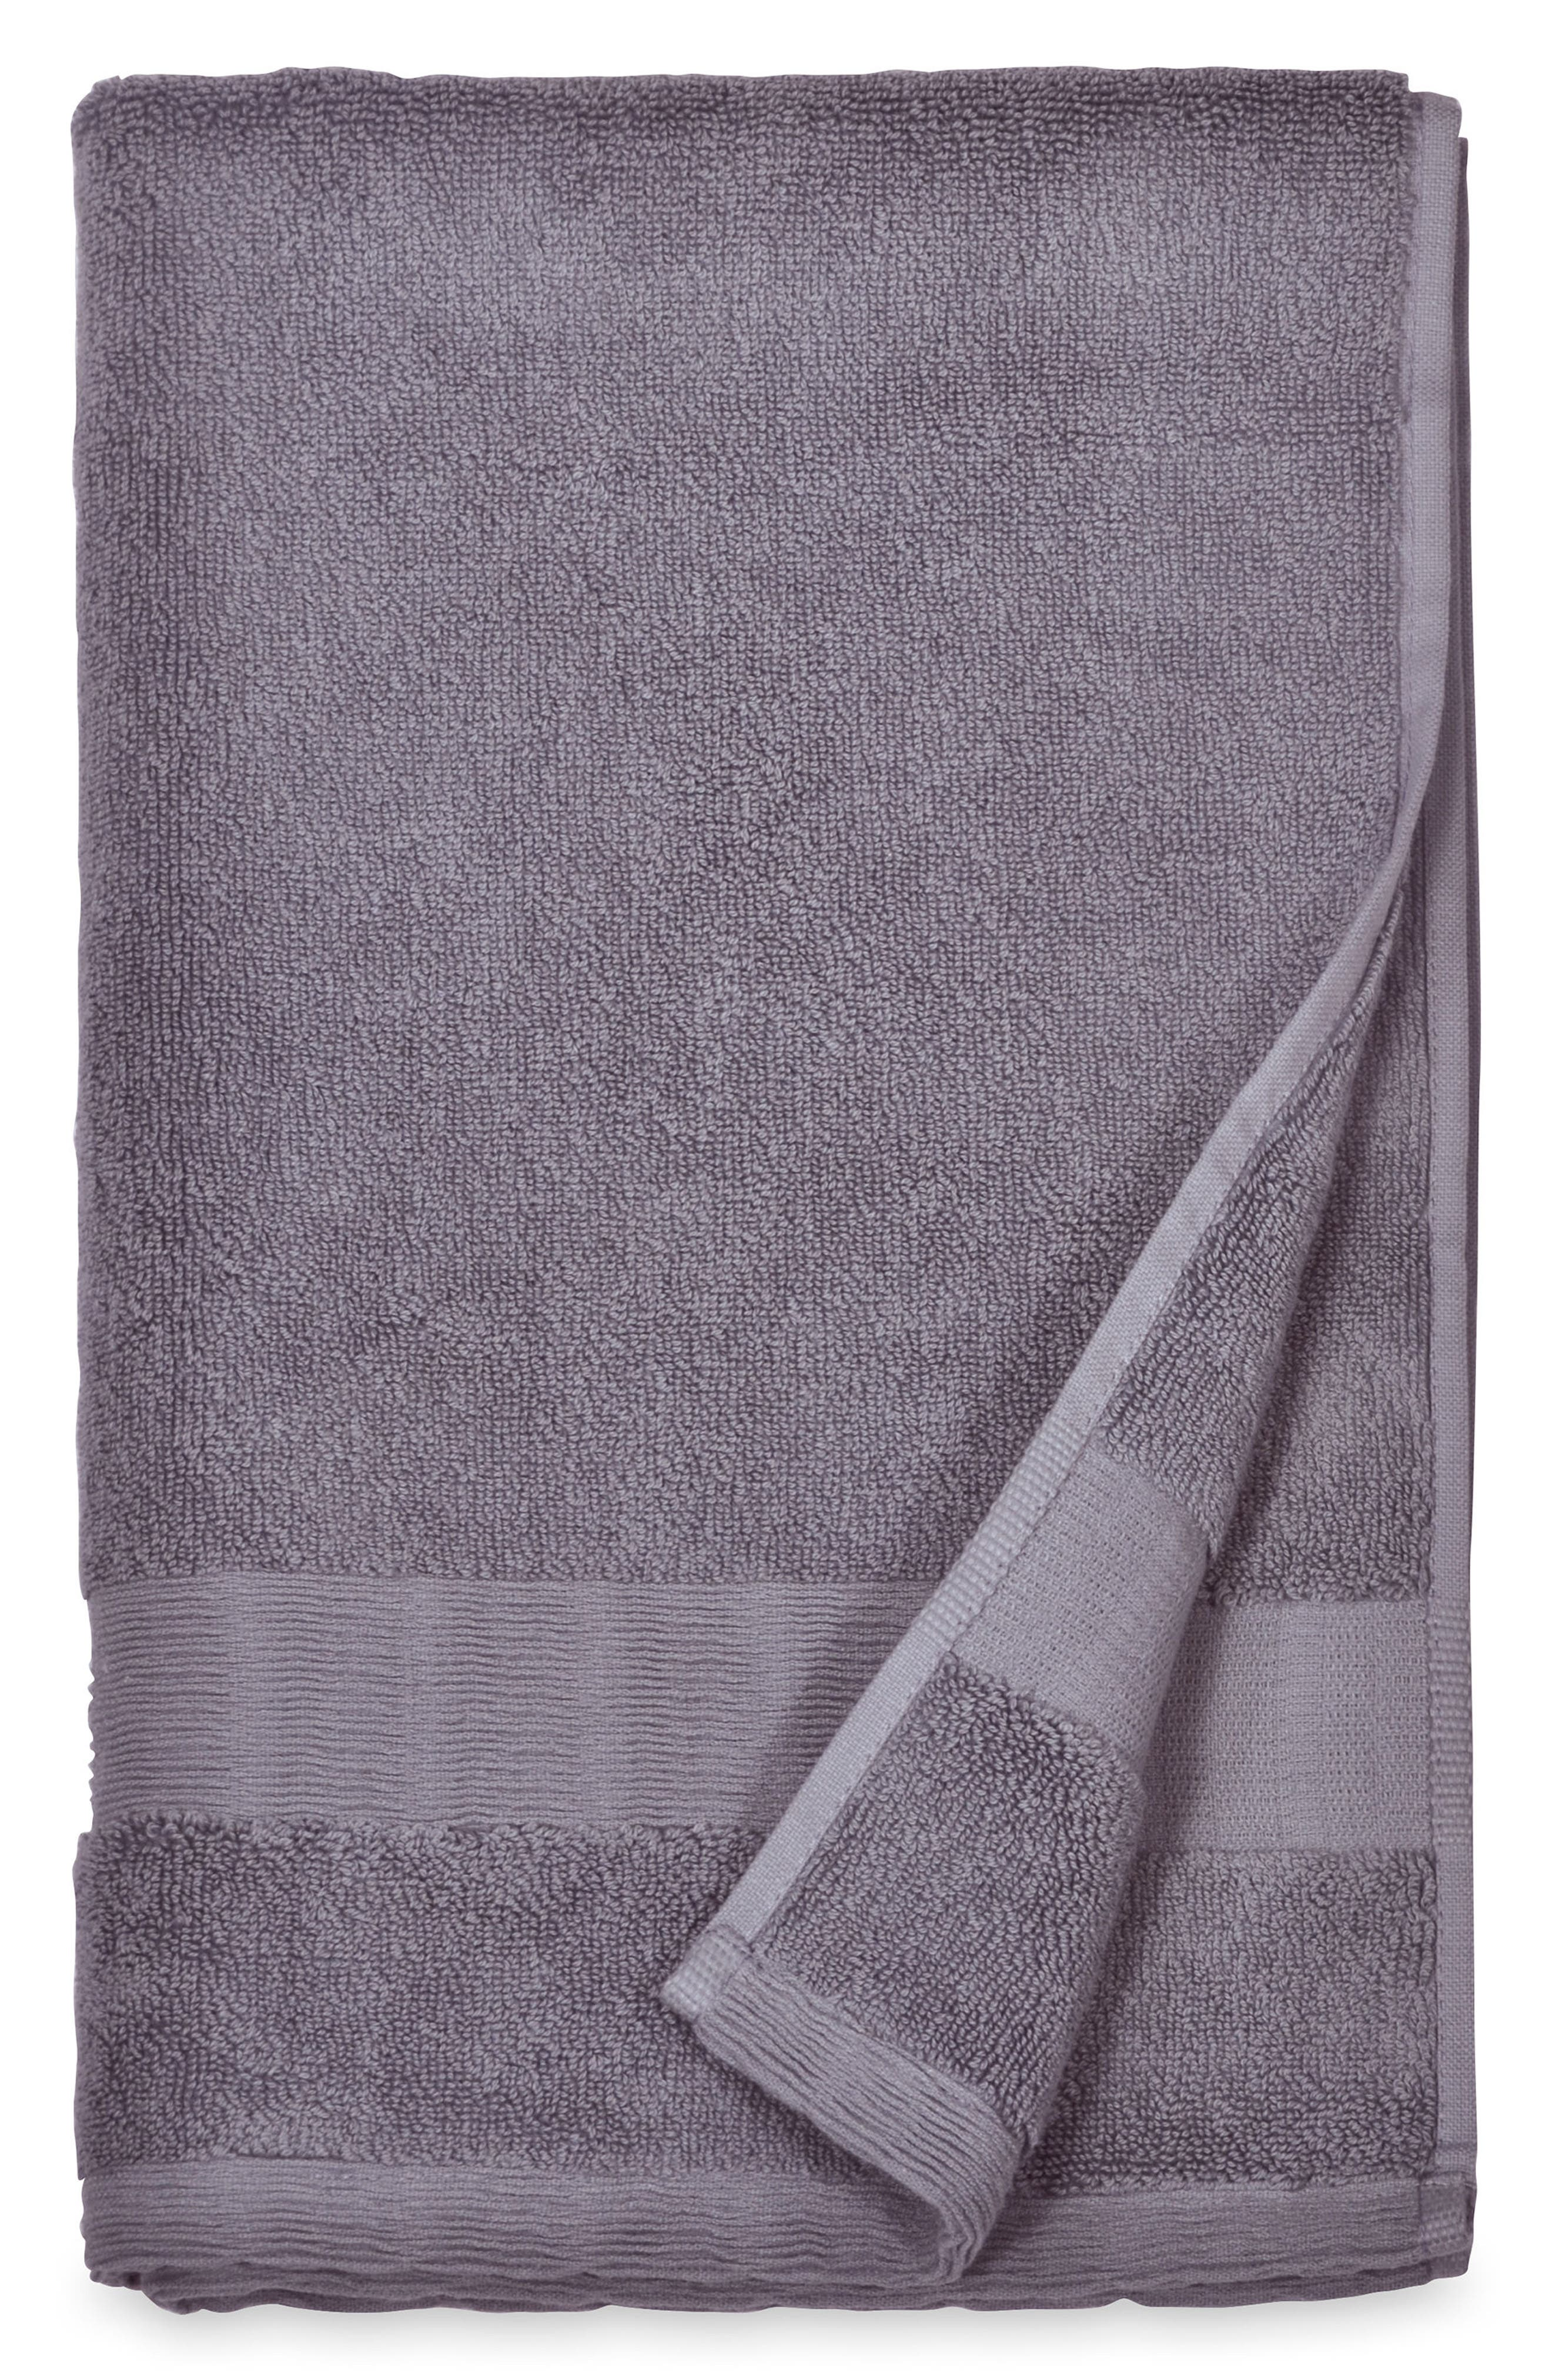 Mercer Hand Towel,                         Main,                         color, Dusty Lavender